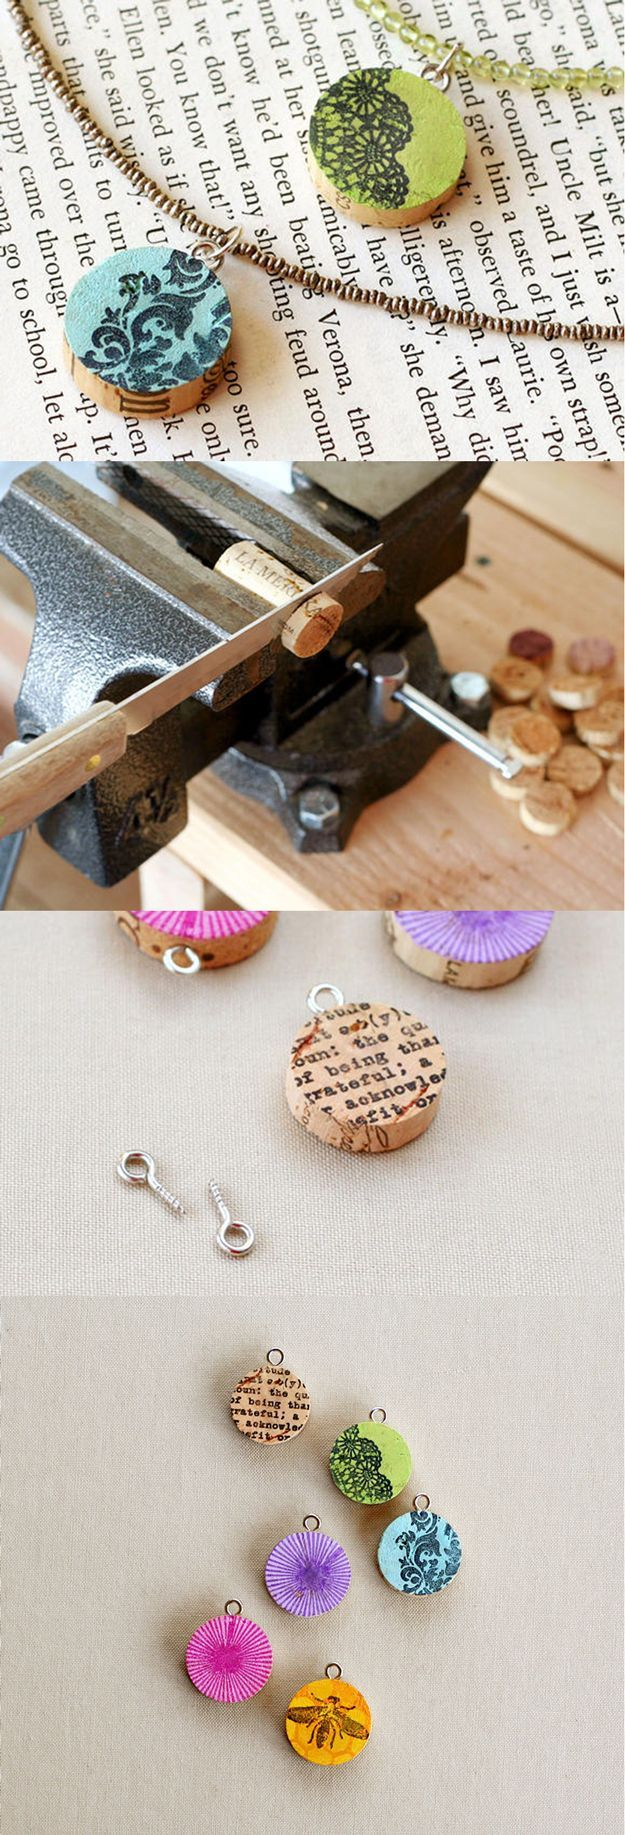 43 More DIY Wine Cork Crafts Ideas